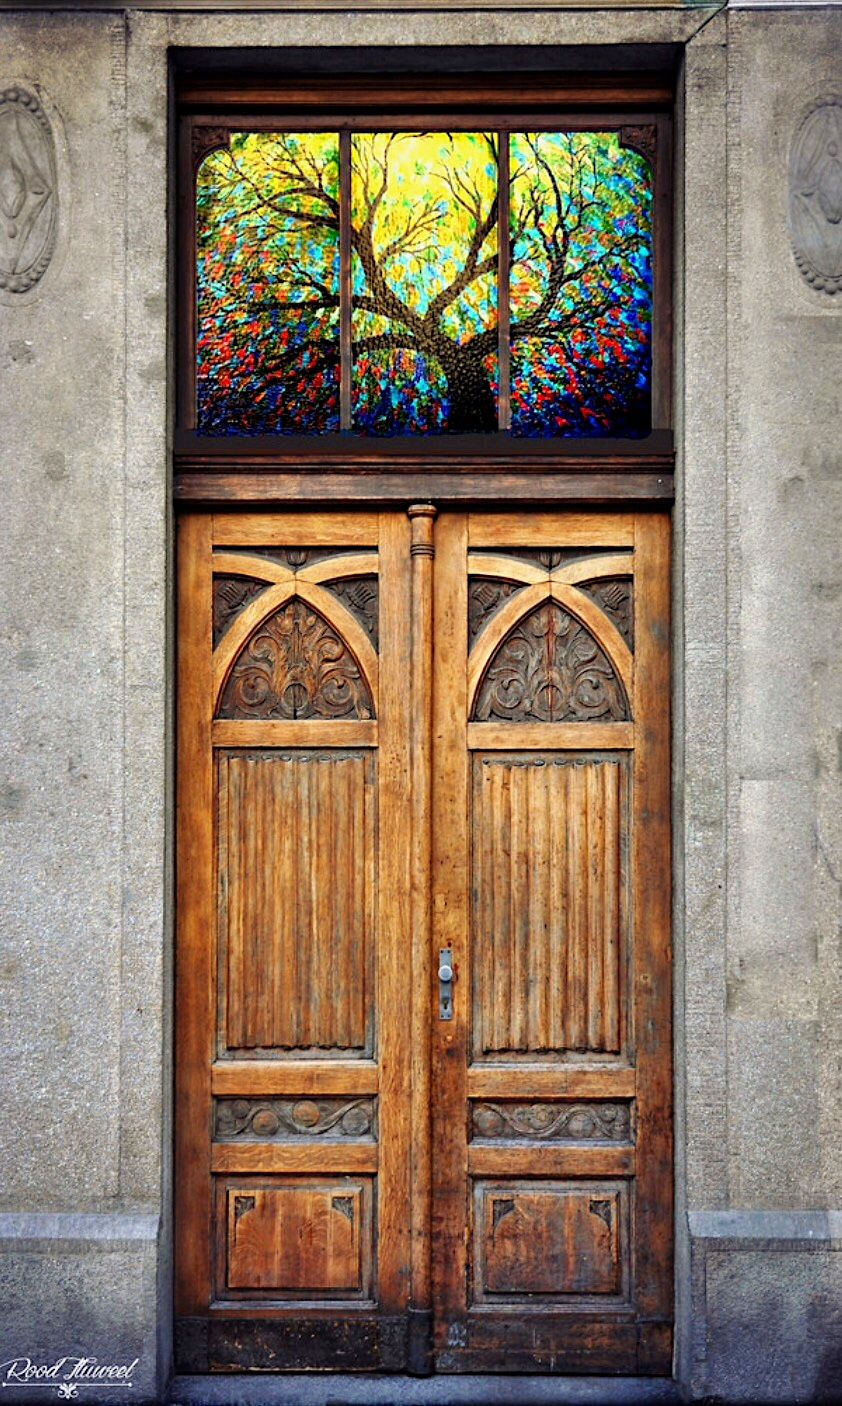 Le Meilleur Stained Glass Over A Carved Wooden Door Location Unknown Ce Mois Ci